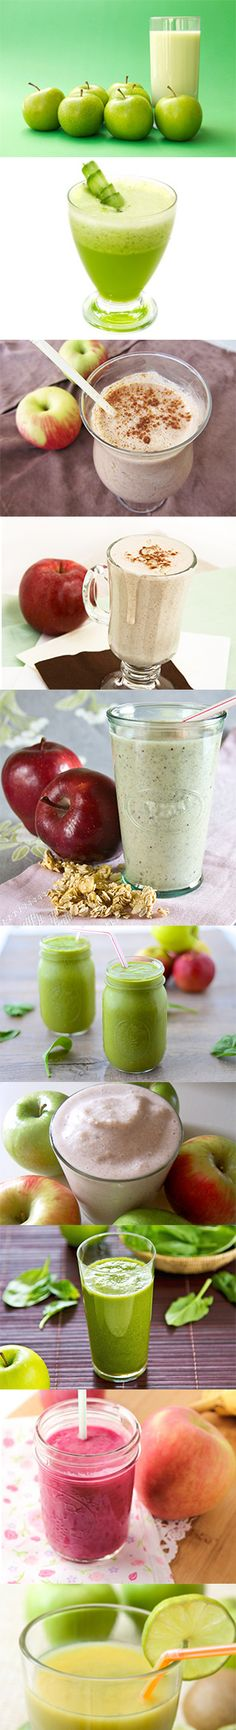 9 Awesome Healthy Apple Smoothie Recipes - One Smoothie in the morning and you will be energized all day long.